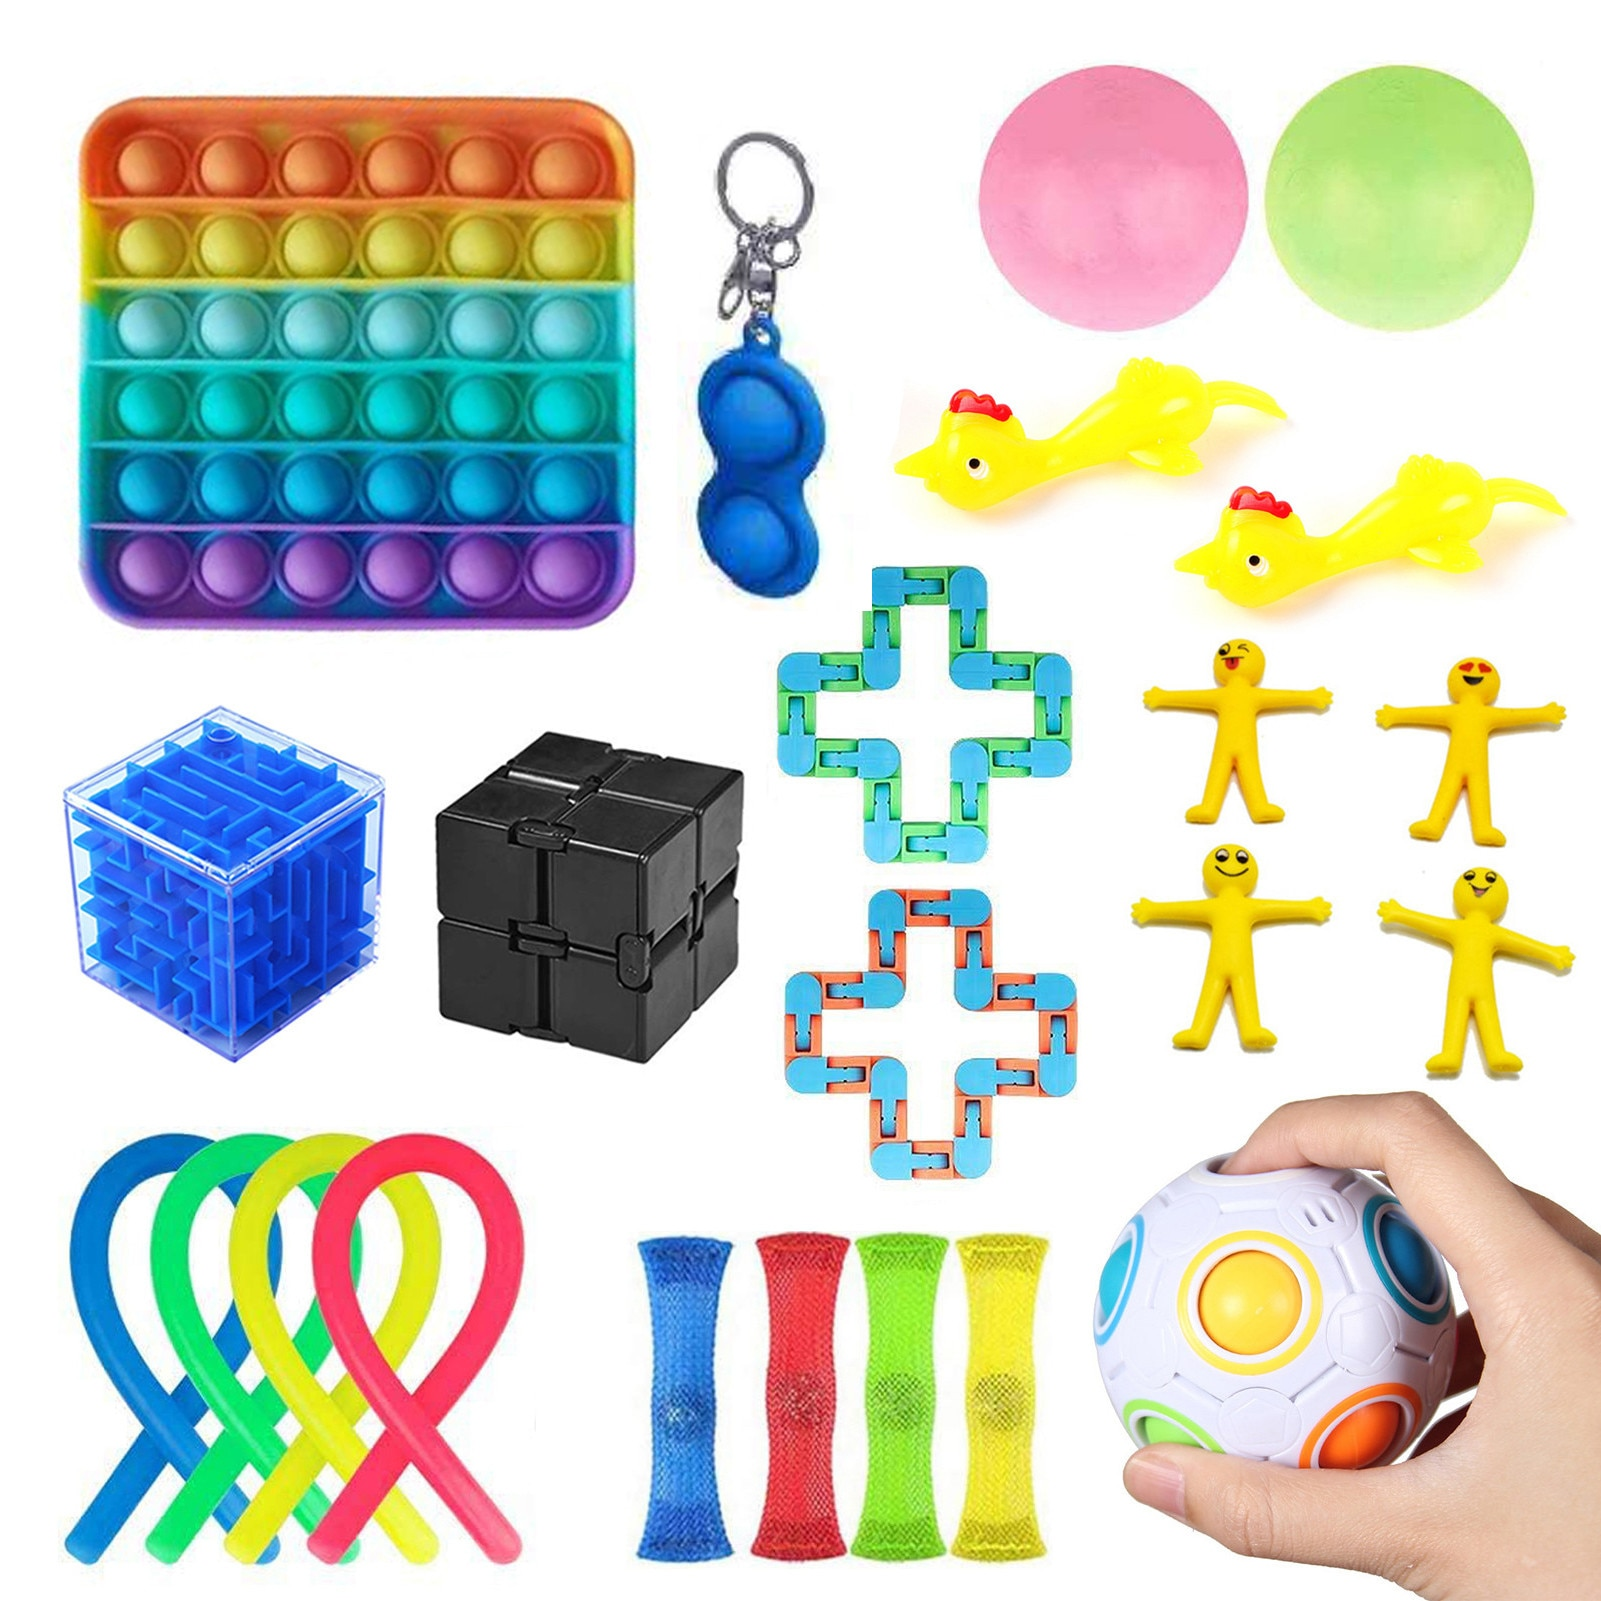 Fidget Toys Anti Stress Set Stretchy Strings Popit Gift Pack Adults Children Squishy Sensory Antistress Relief Figet Toys enlarge